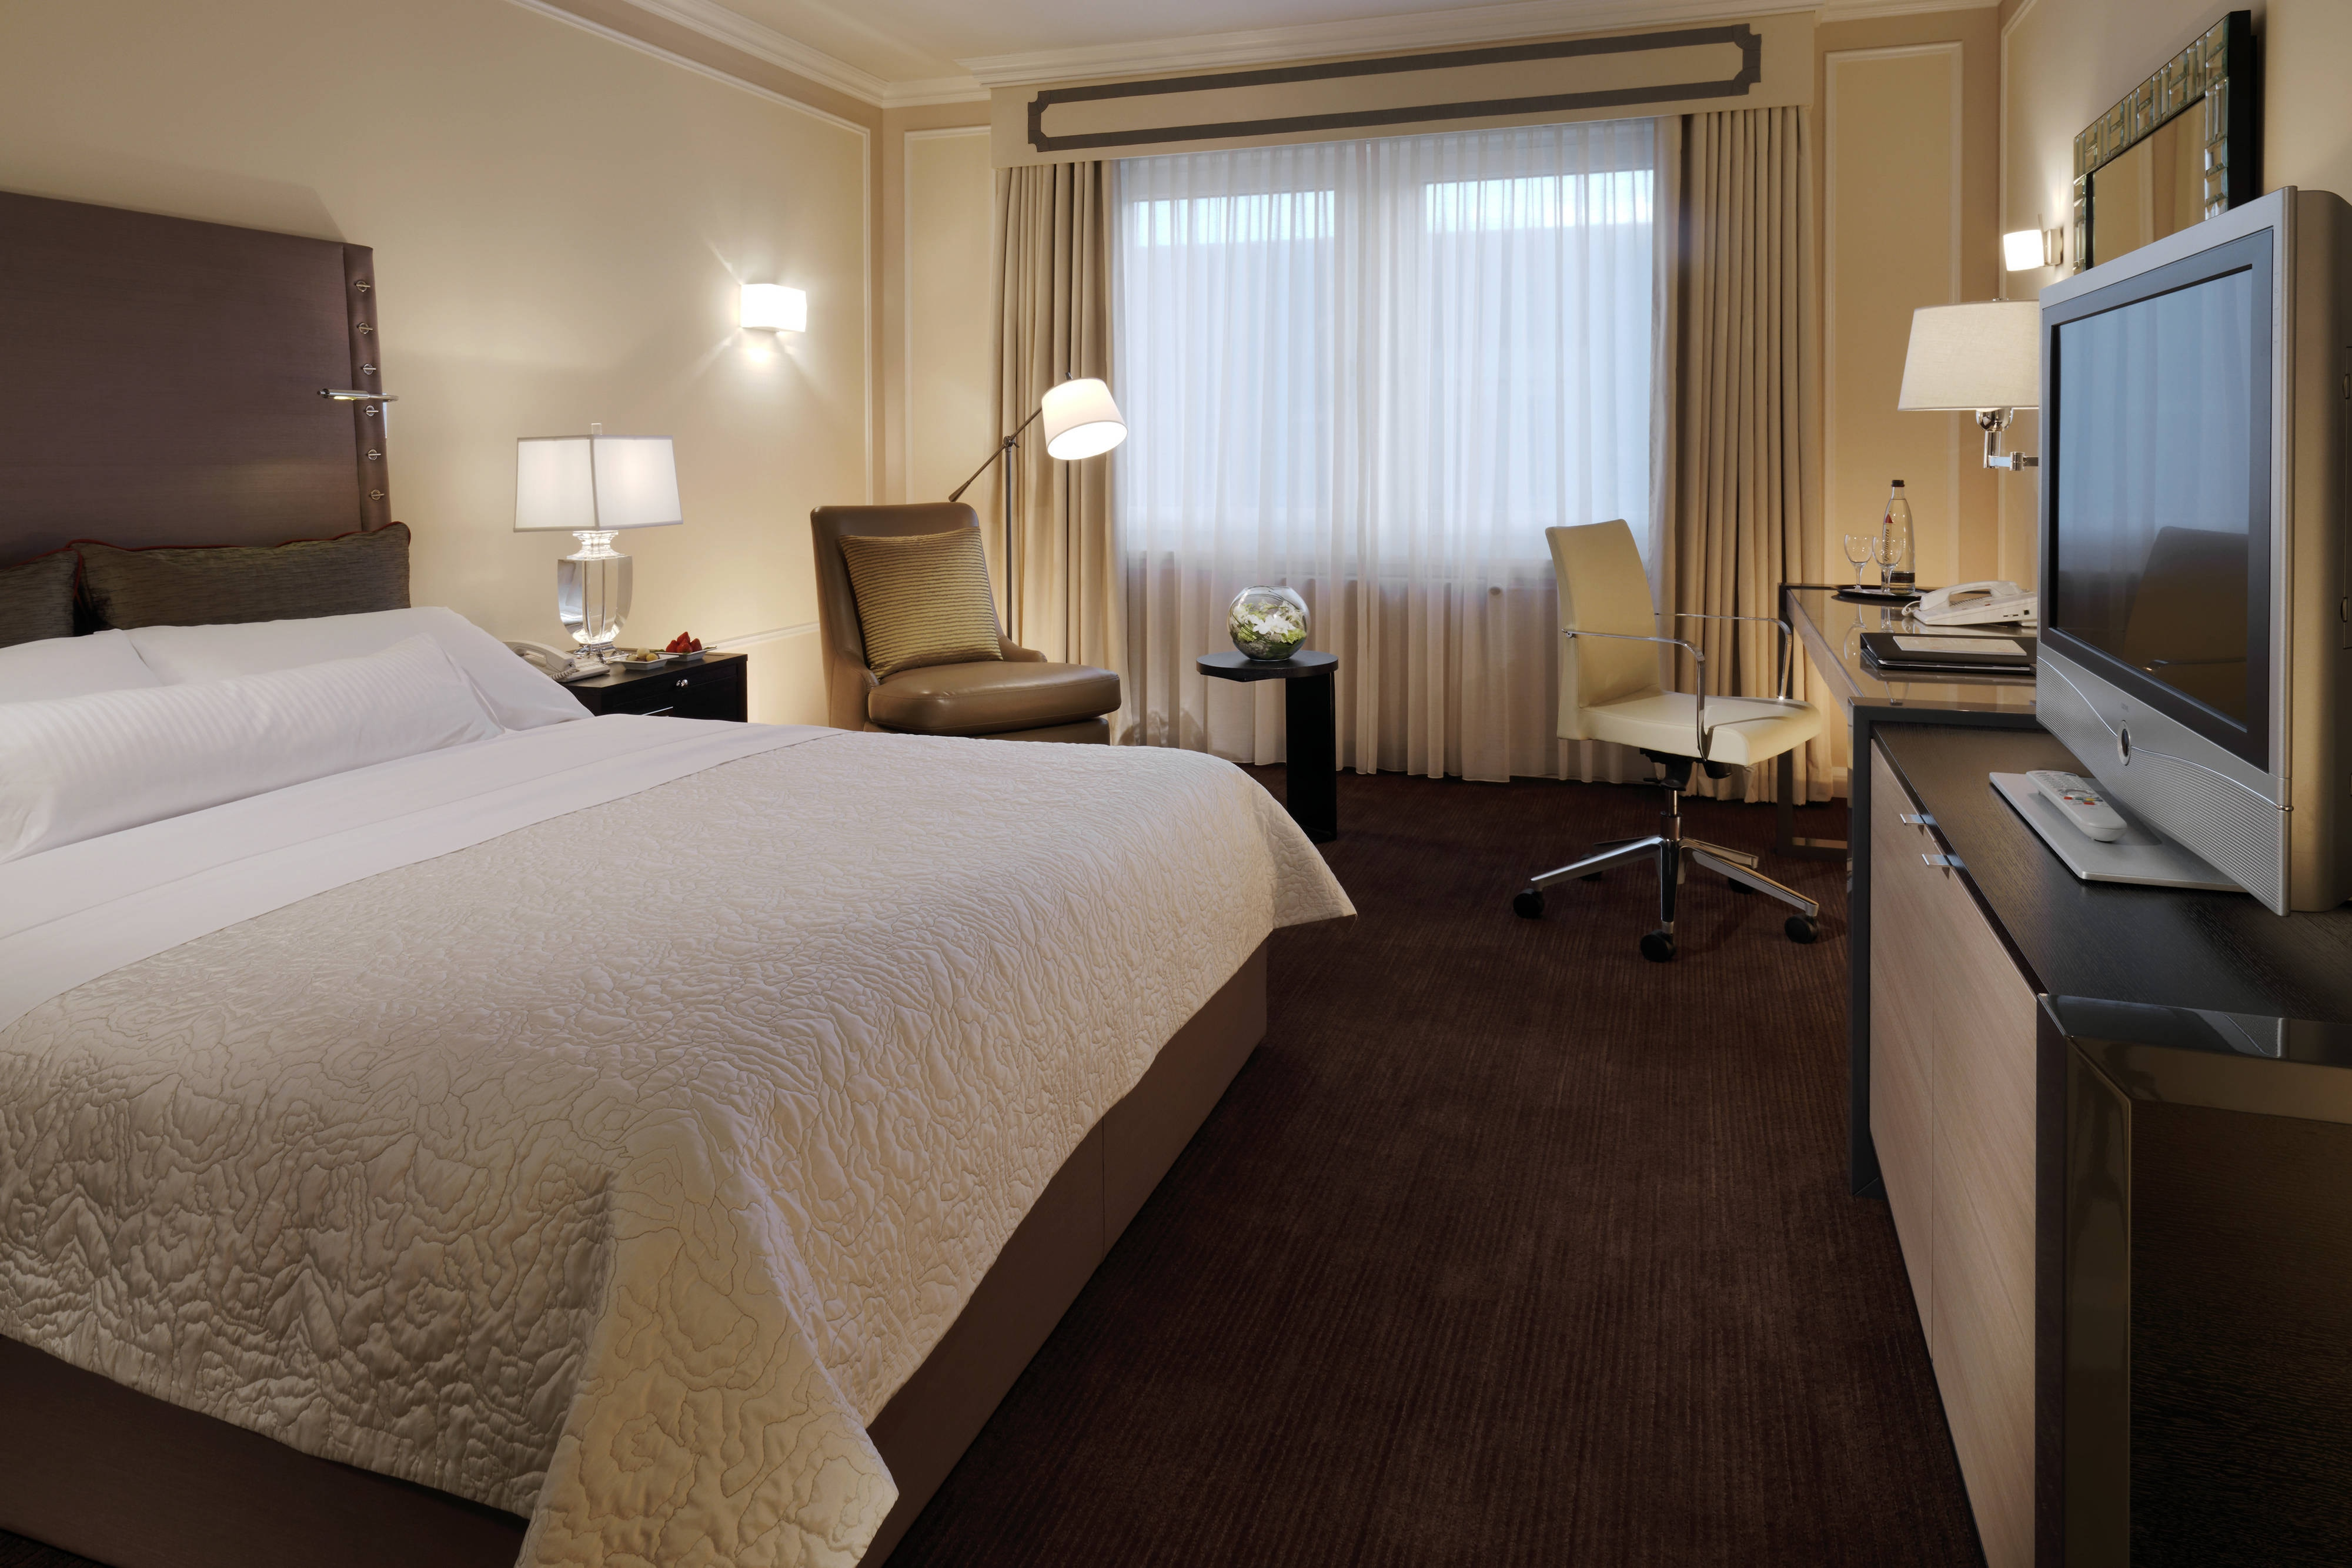 Your accomodation in Berlin - Deluxe room on a higher floor at the Westin Grand